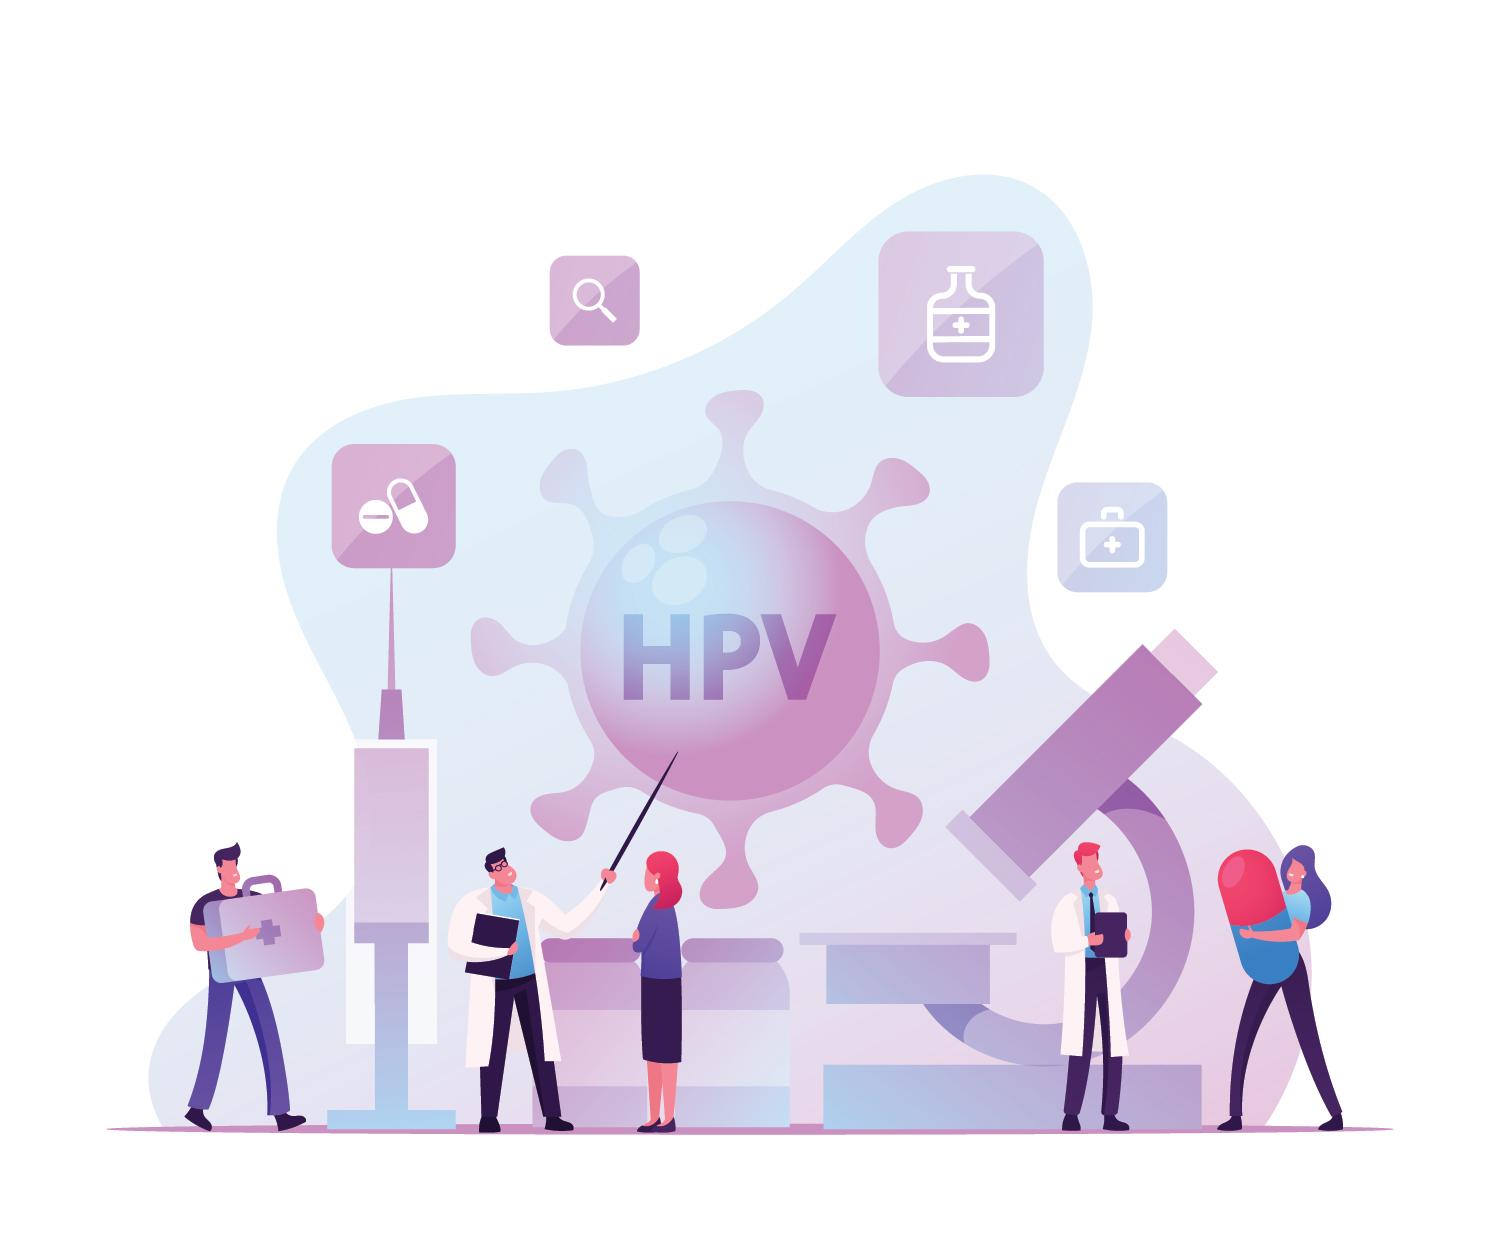 Let's Talk About HPV